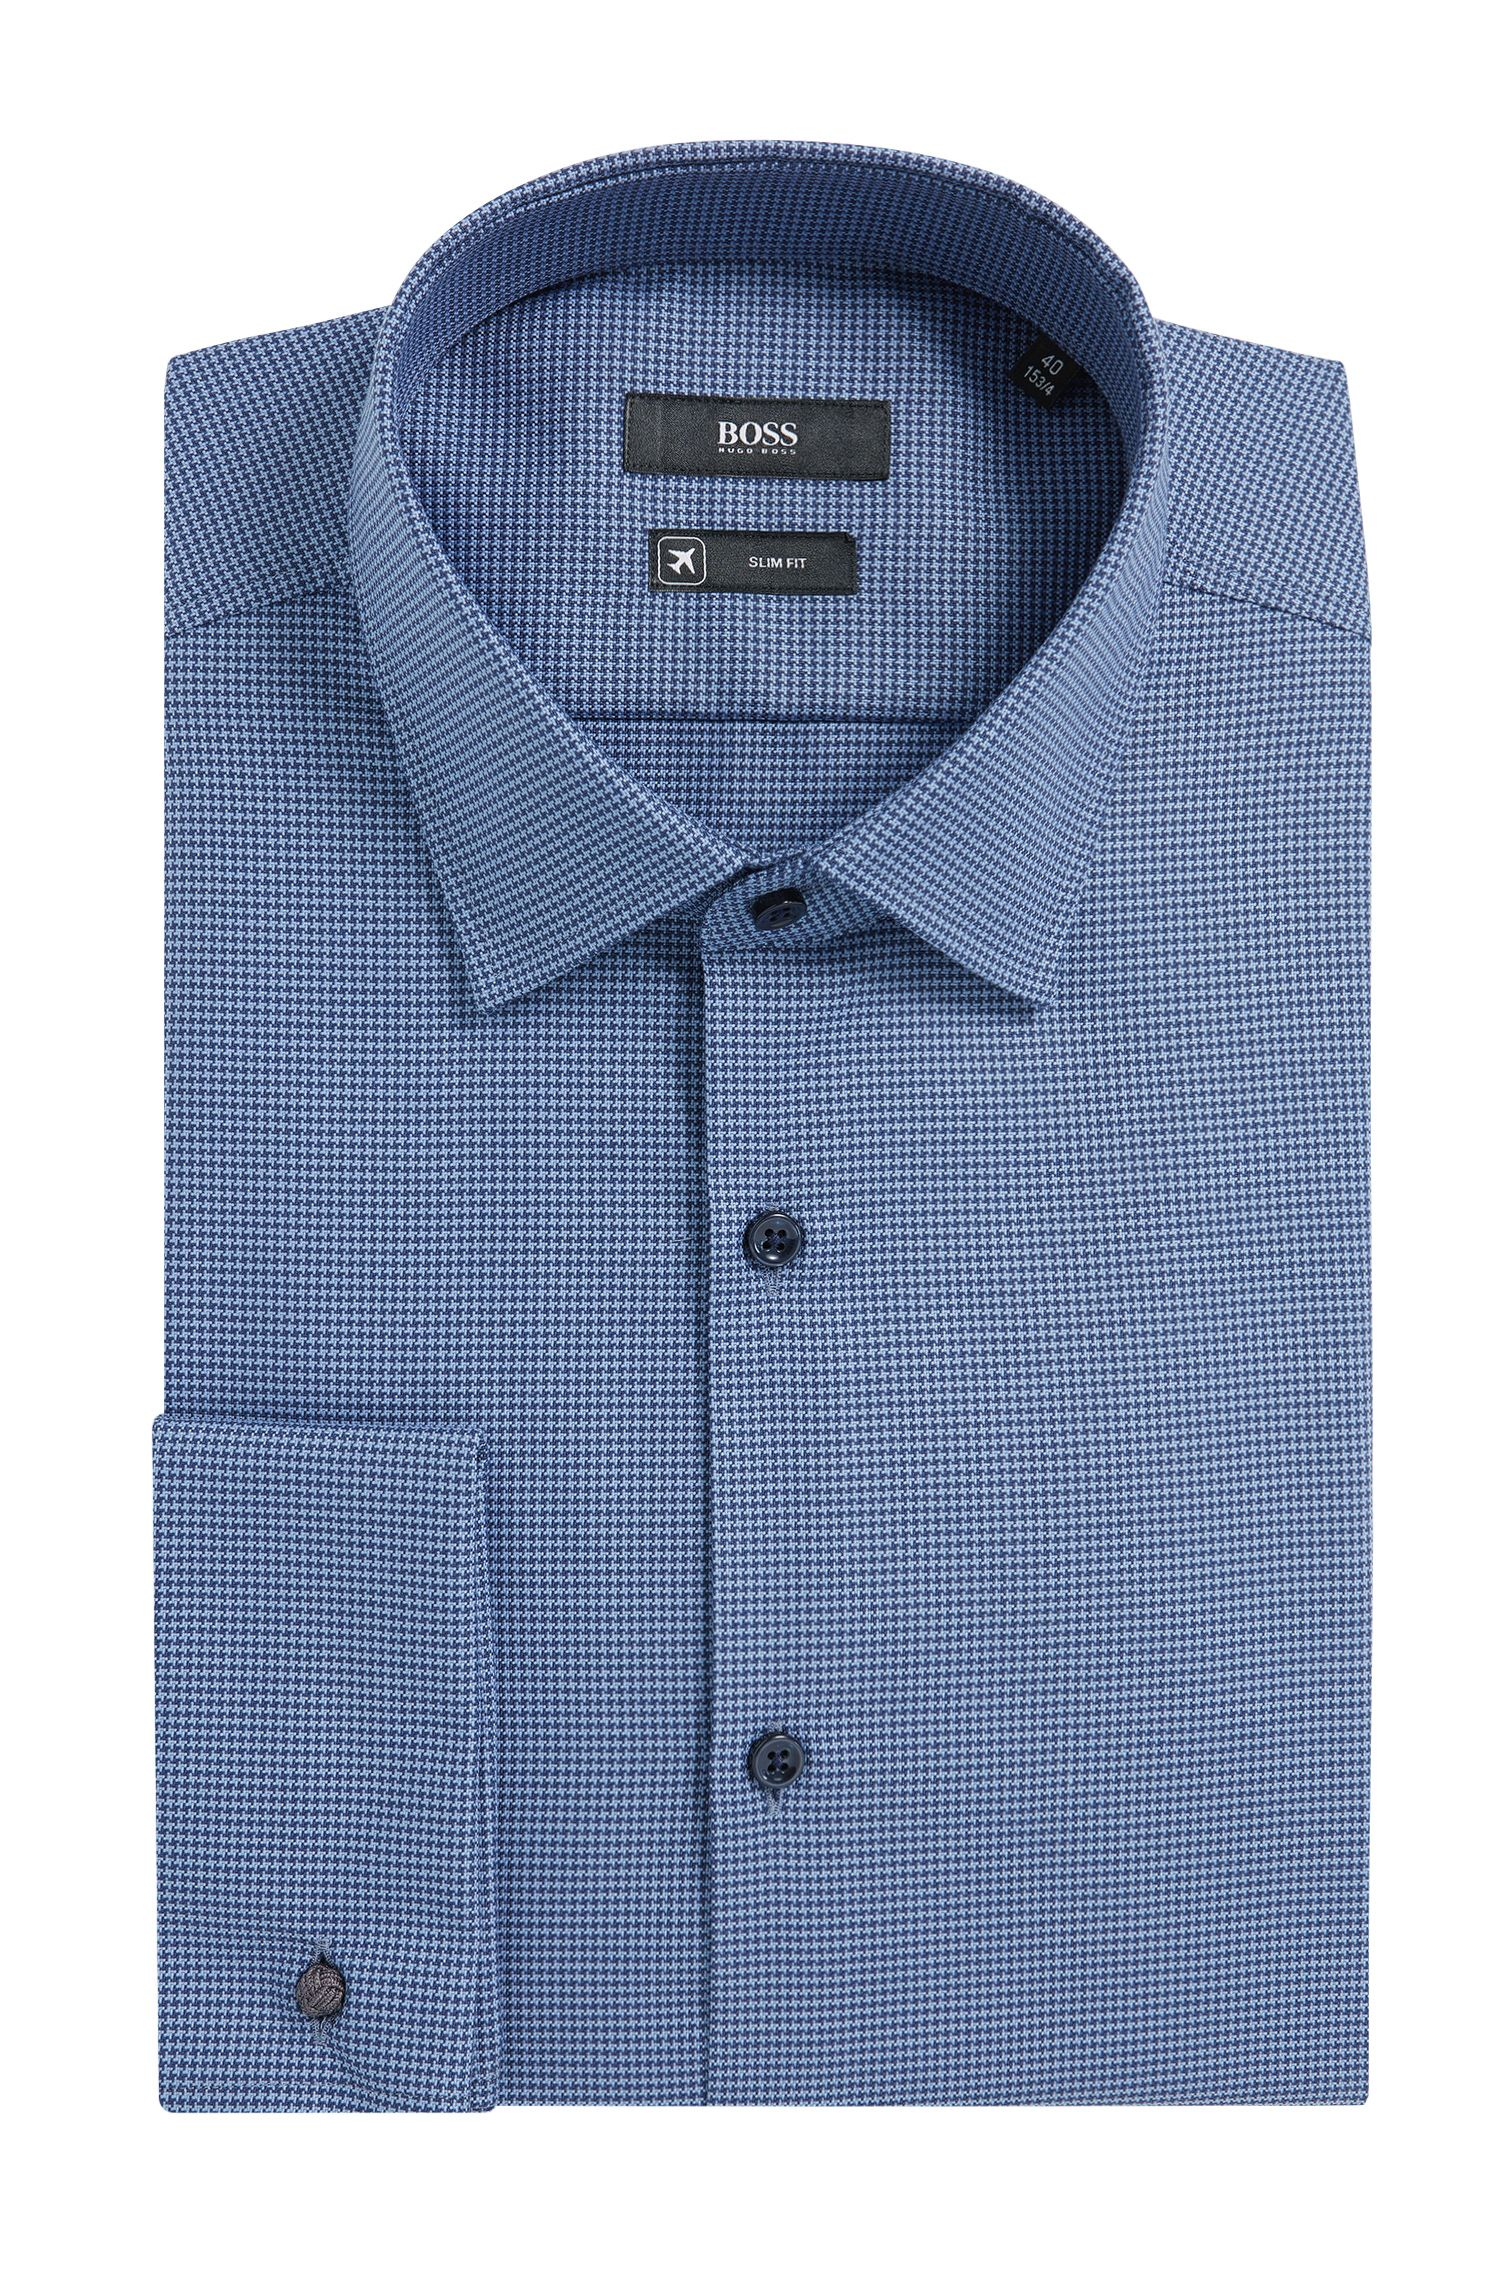 'Jacques' | Slim Fit, Micro-Houndstooth Aloe Vera Cotton Dress Shirt